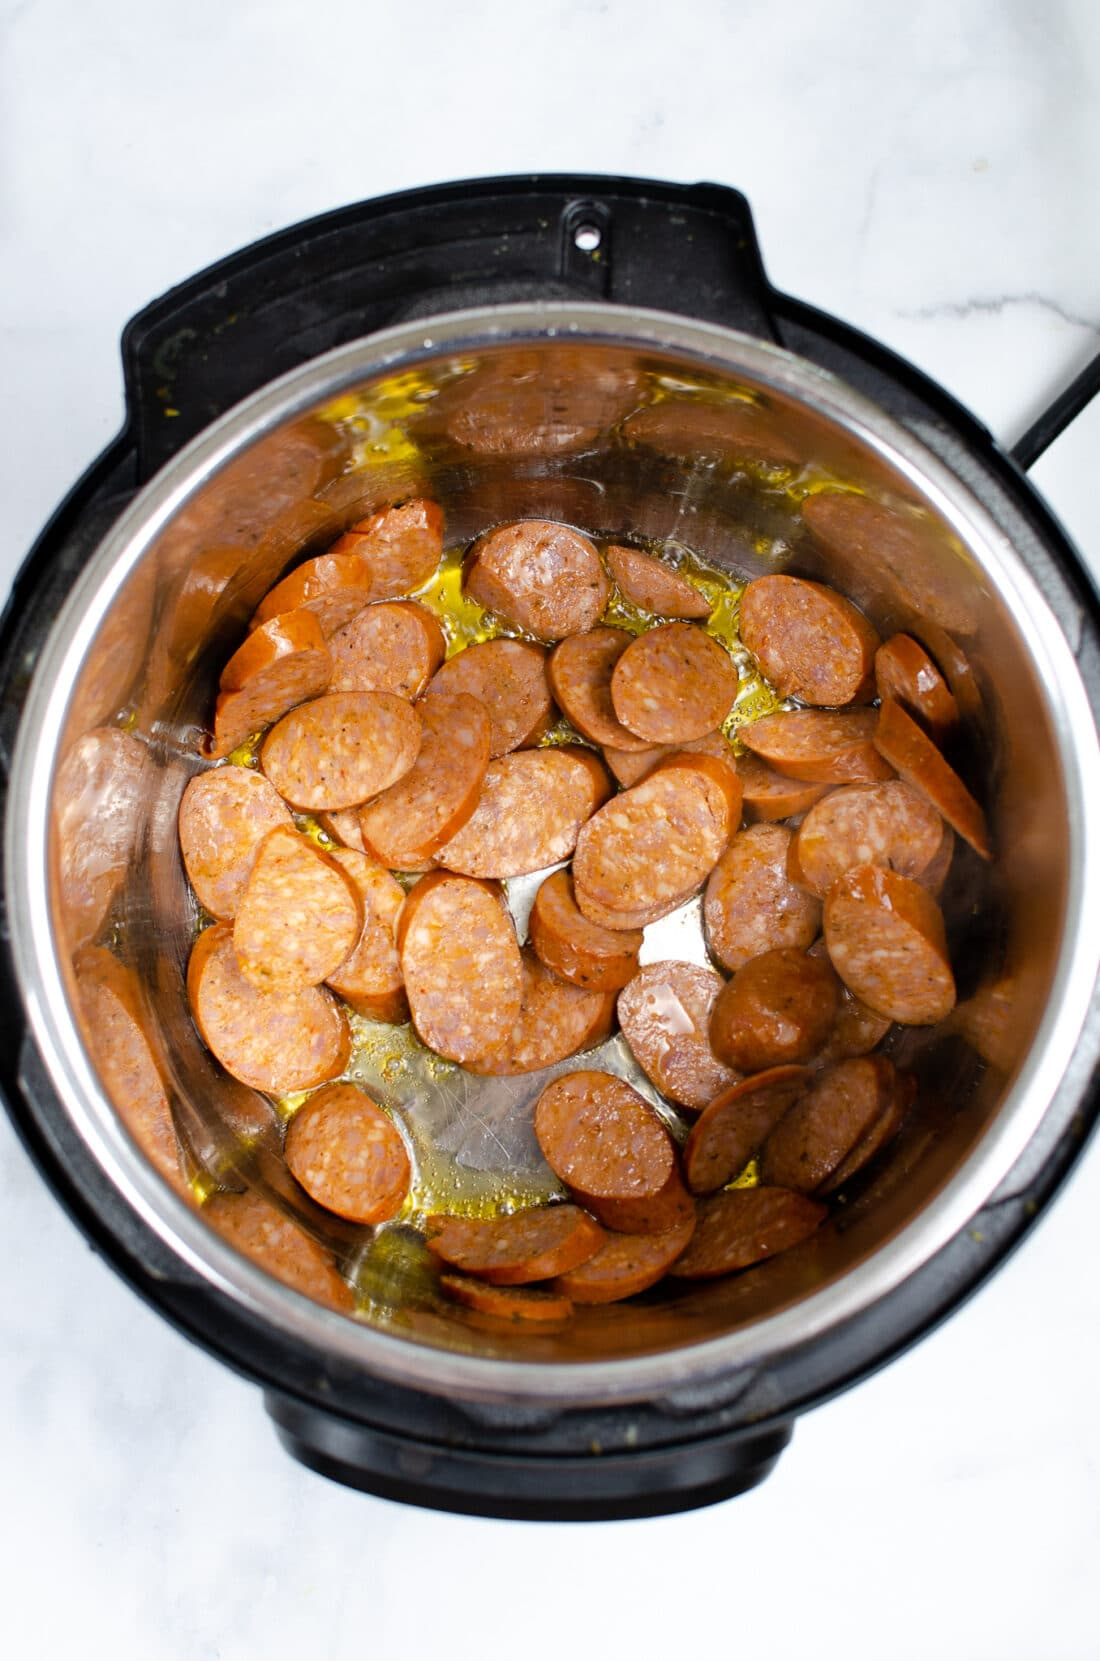 Instant Pot Andouille Sausage Jambalaya Step 1. An authentic Instant Pot Andouille Sausage Jambalaya recipe that can be made in 30 minutes! This flavorful easy one-pan jambalaya recipe is made with andouille sausage, bell peppers, onion, celery, and spices. It's an instant family favorite recipe that is perfect for busy nights.